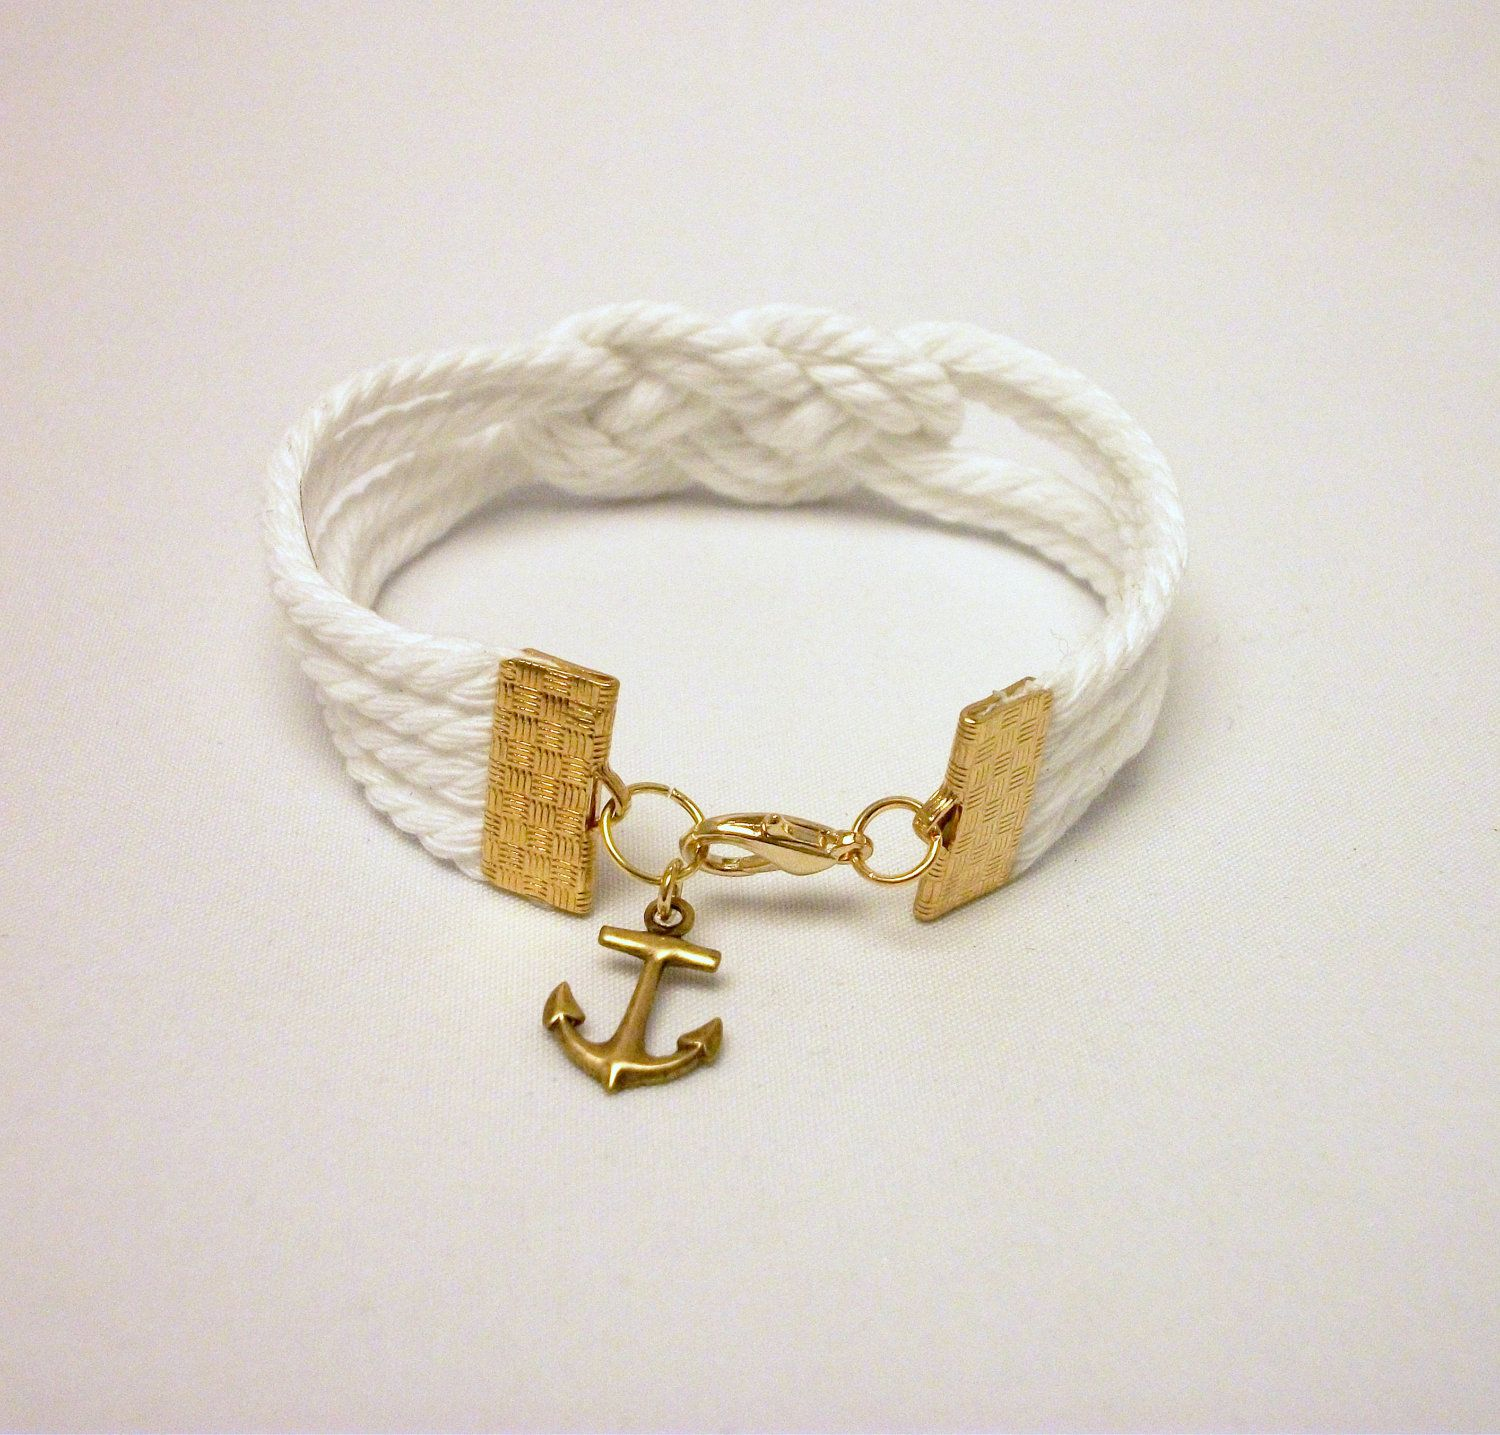 diy bracelet hgtv handmade youtube rope watch nautical bracelets